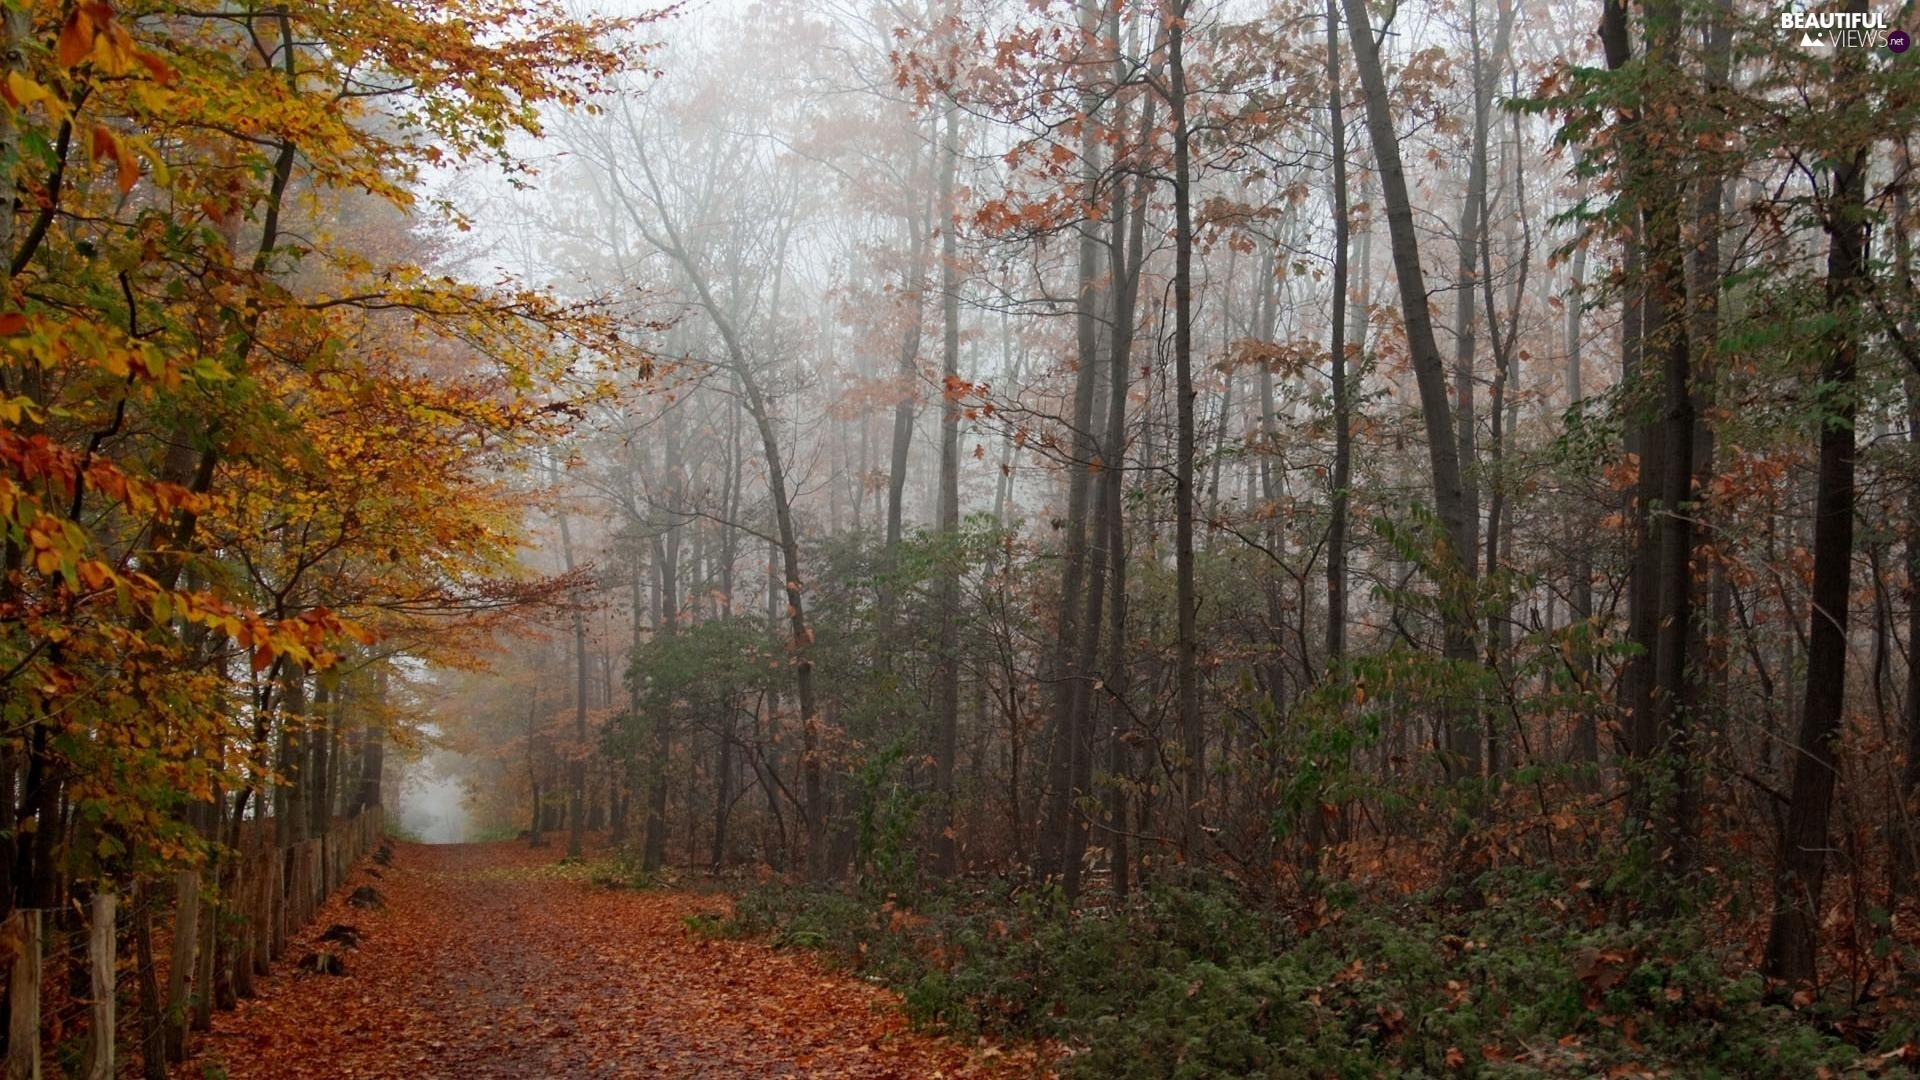 viewes, autumn, color, trees, landscape, Path, Leaf